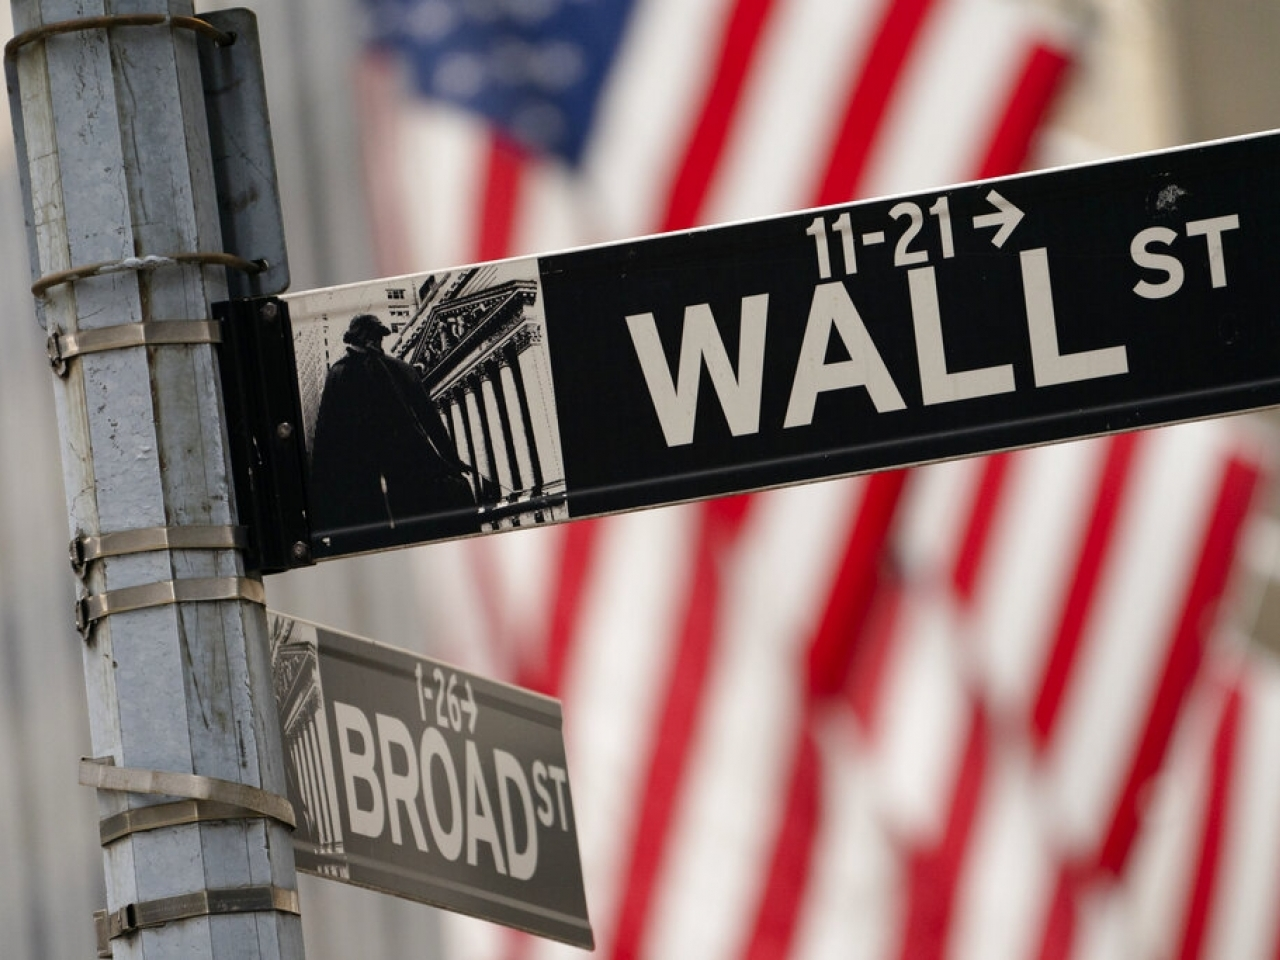 Wall Street shrugs off data showing rising inflation. Photo: AP